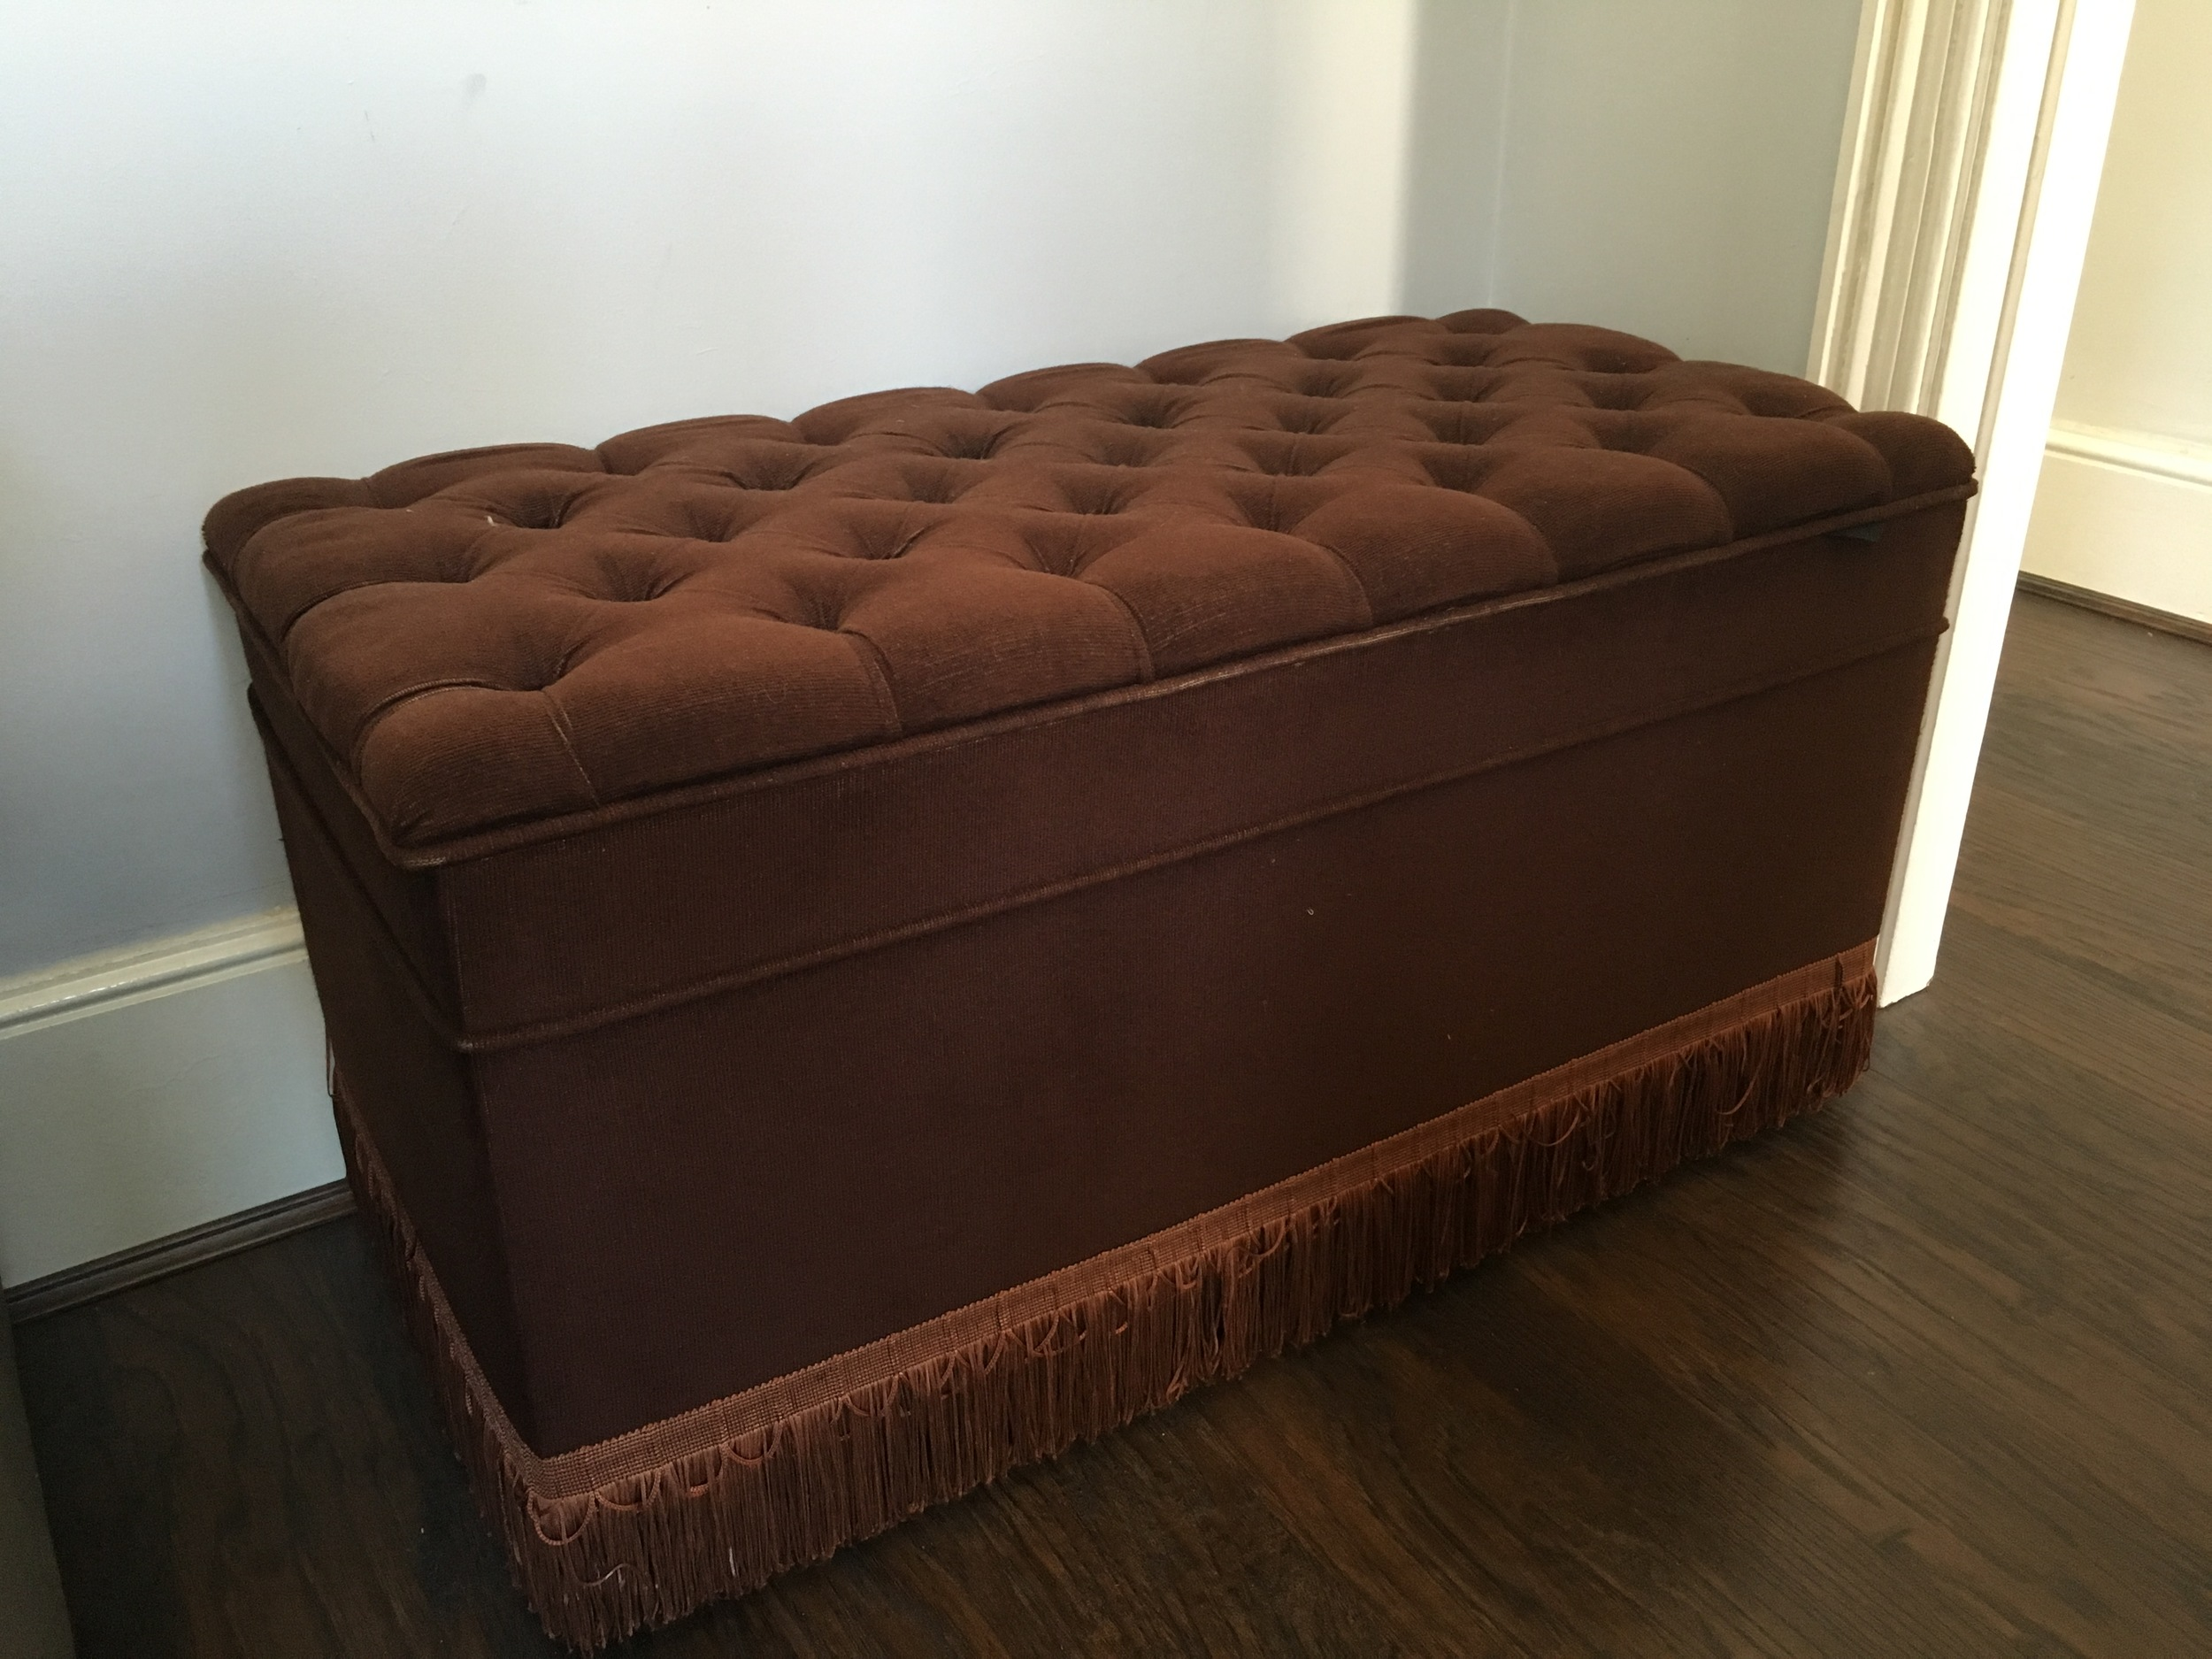 The Original Vintage Ottoman- Purchased for £15.00